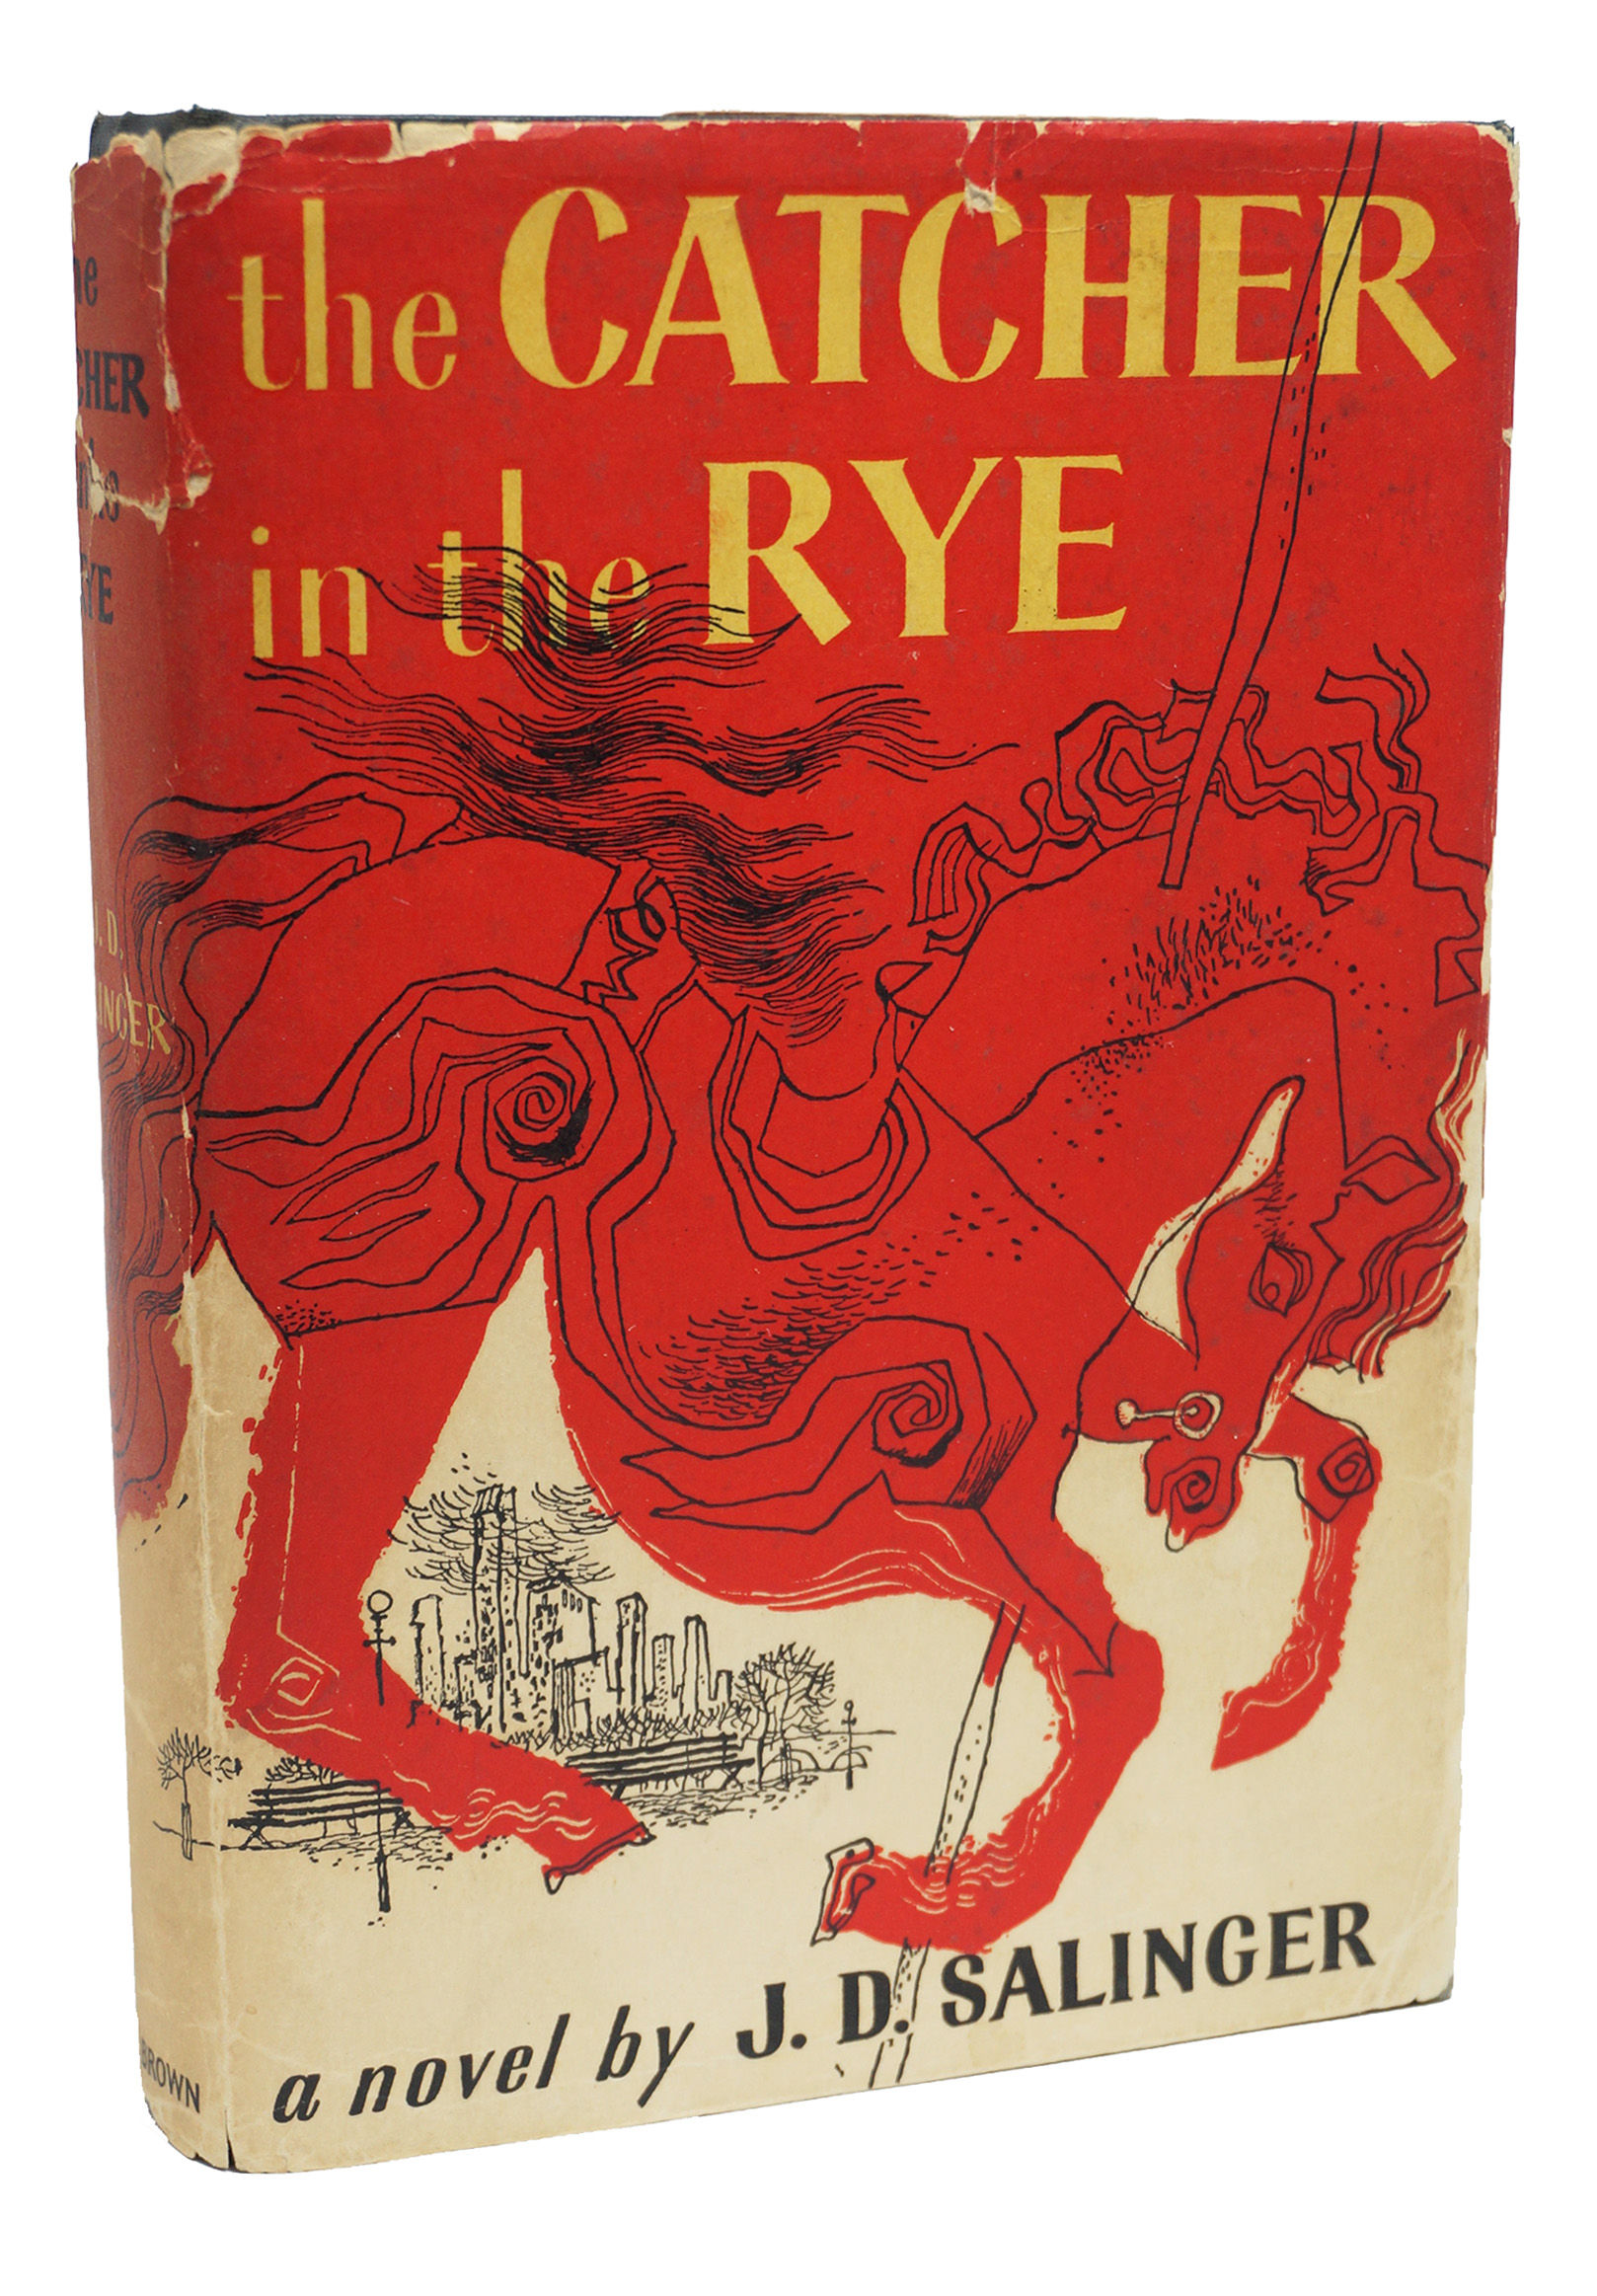 an analysis of the novel catcher in the rye by jd salinger Characters, analysis, novel: the catcher in the rye , jd salinger, english texts, year 9, nsw maurice and sunny maurice is a pimp who arranges a prostitute, sunny, to visit holden.